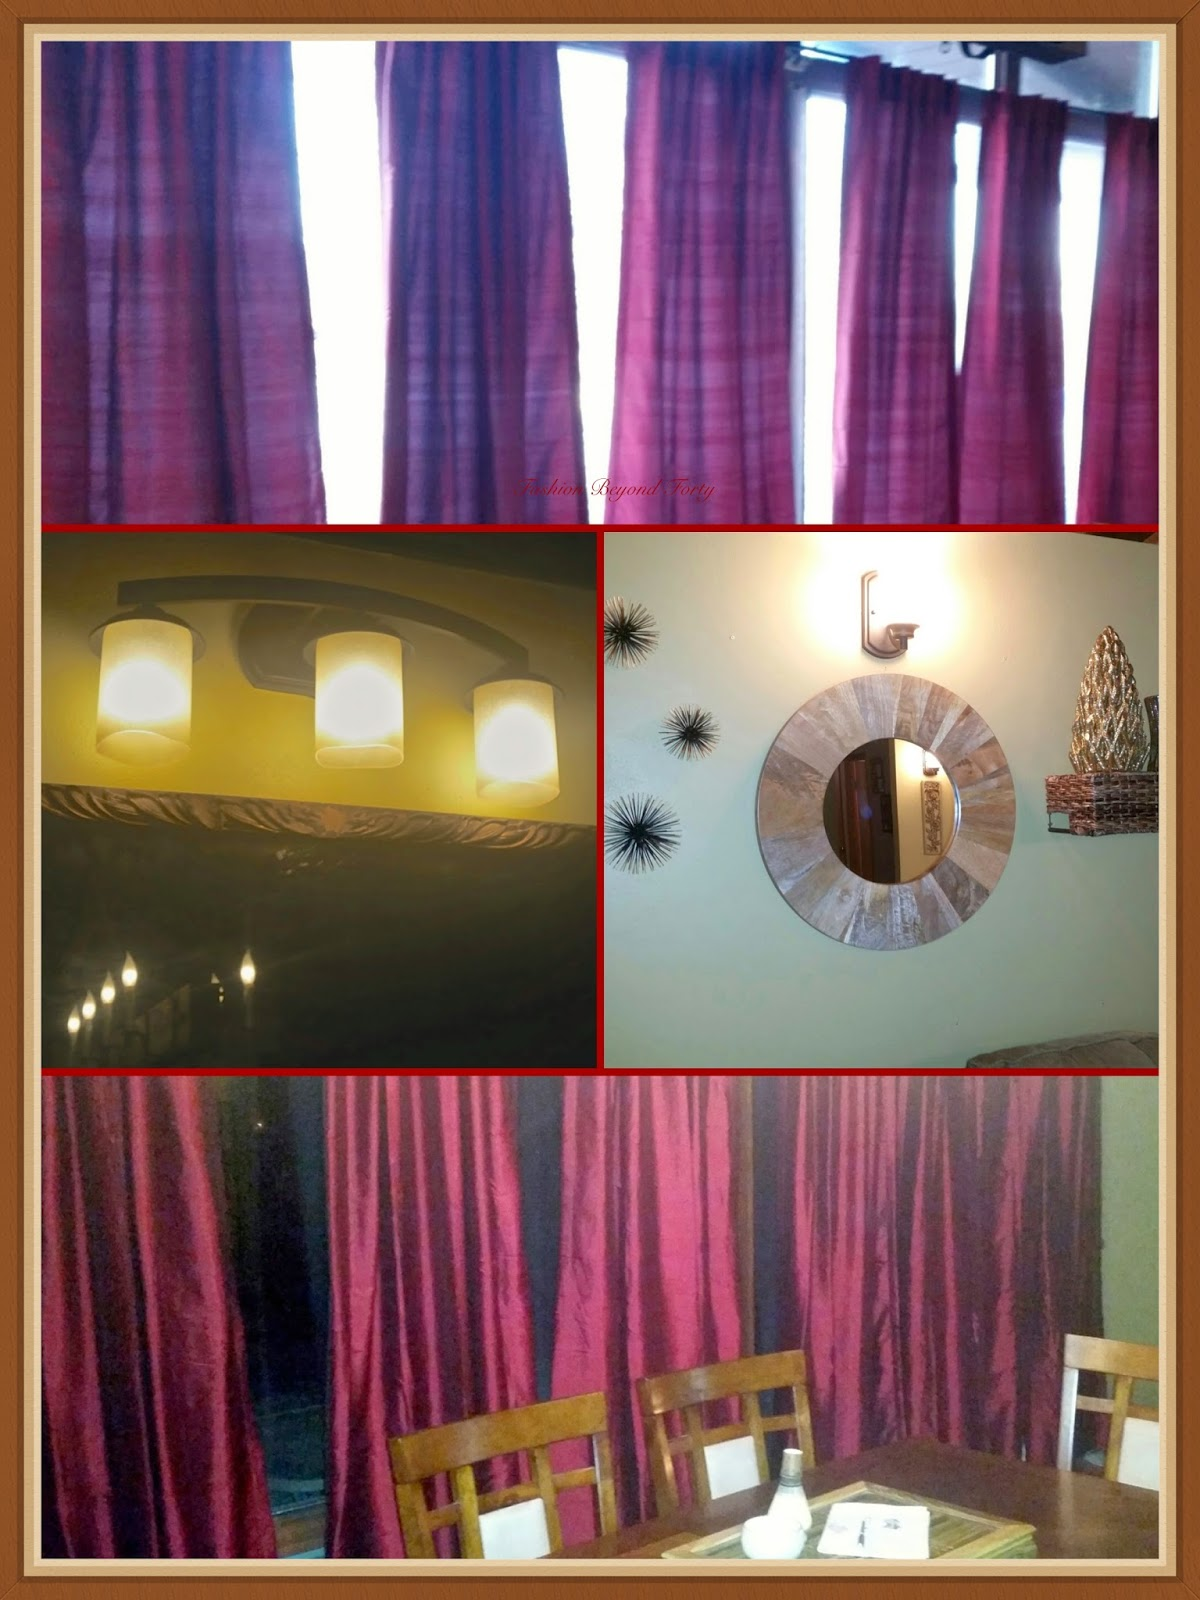 Interior Decor on a budget curtains, lighting, and wall decor